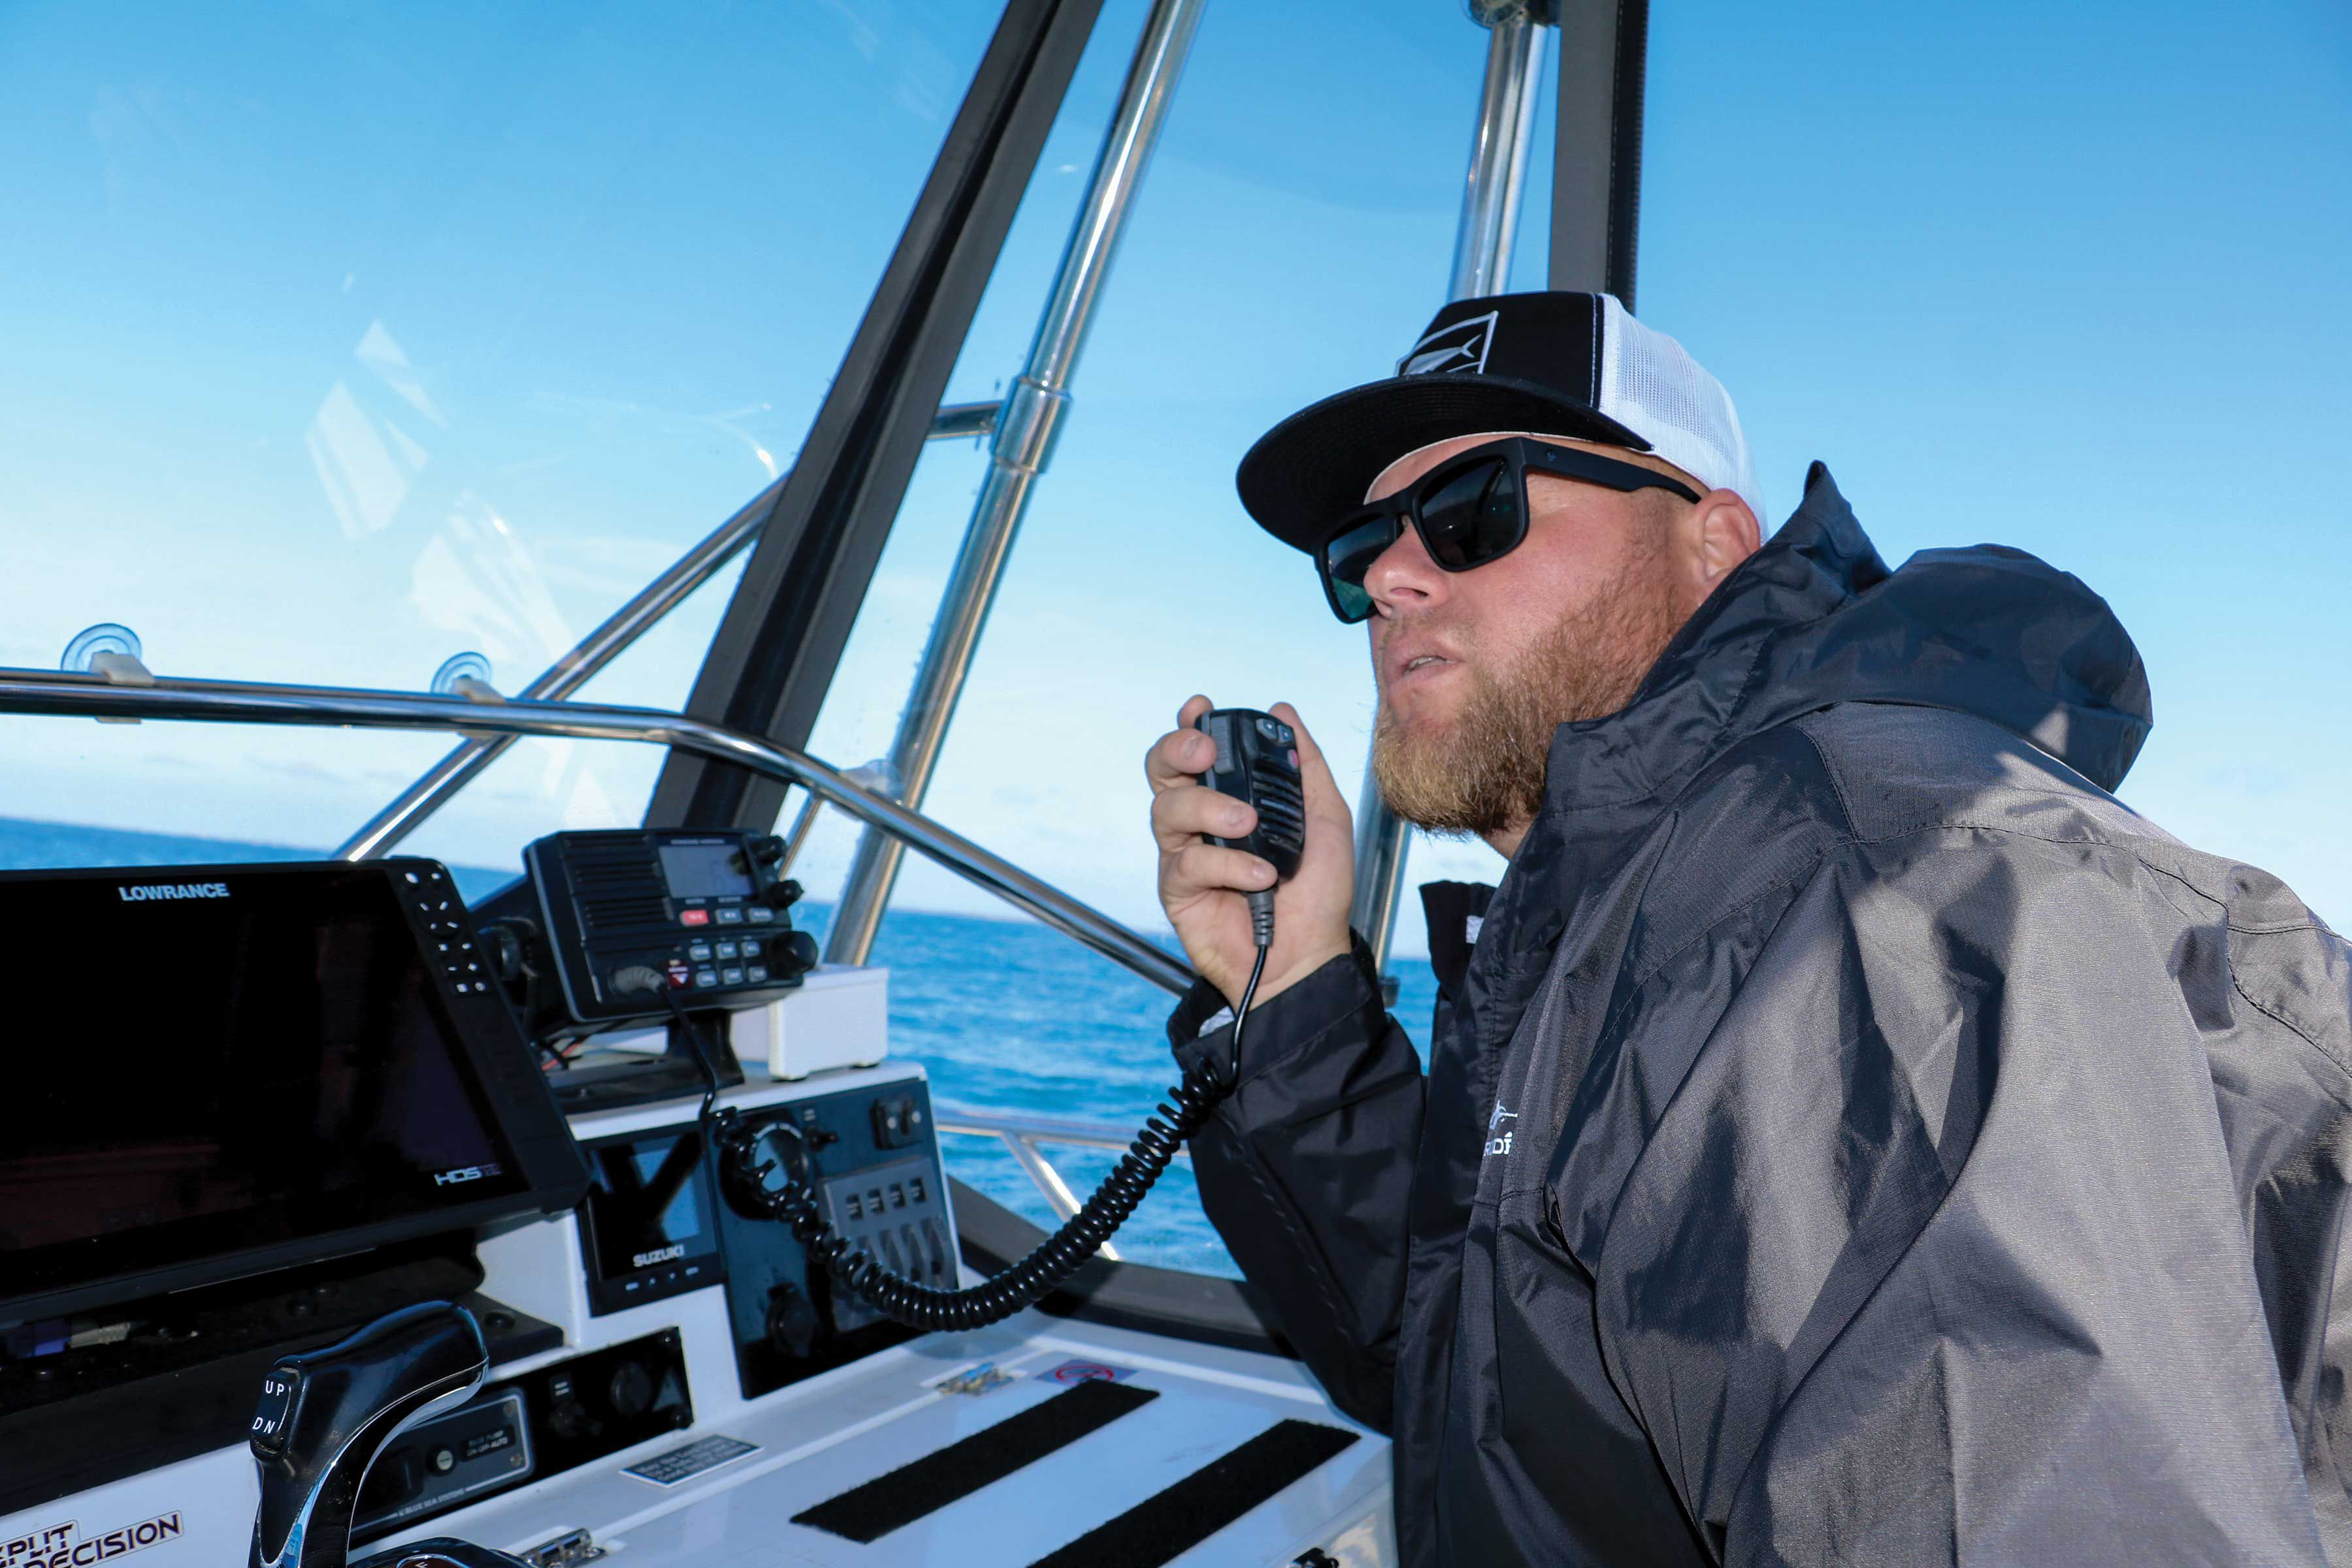 Anglers glean valuable information by scanning VHF channels and listening attentively for clues.